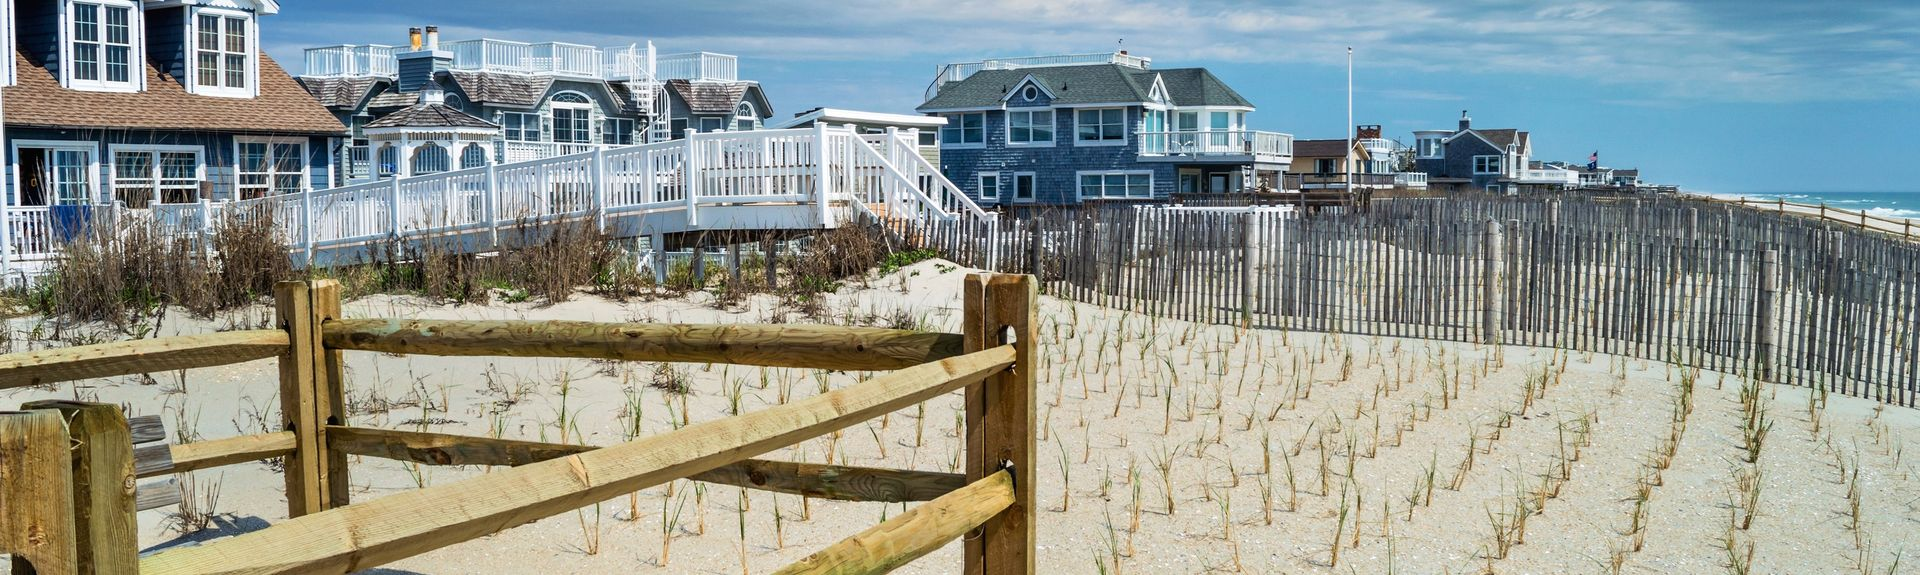 Surf City, Beach Haven, New Jersey, United States of America